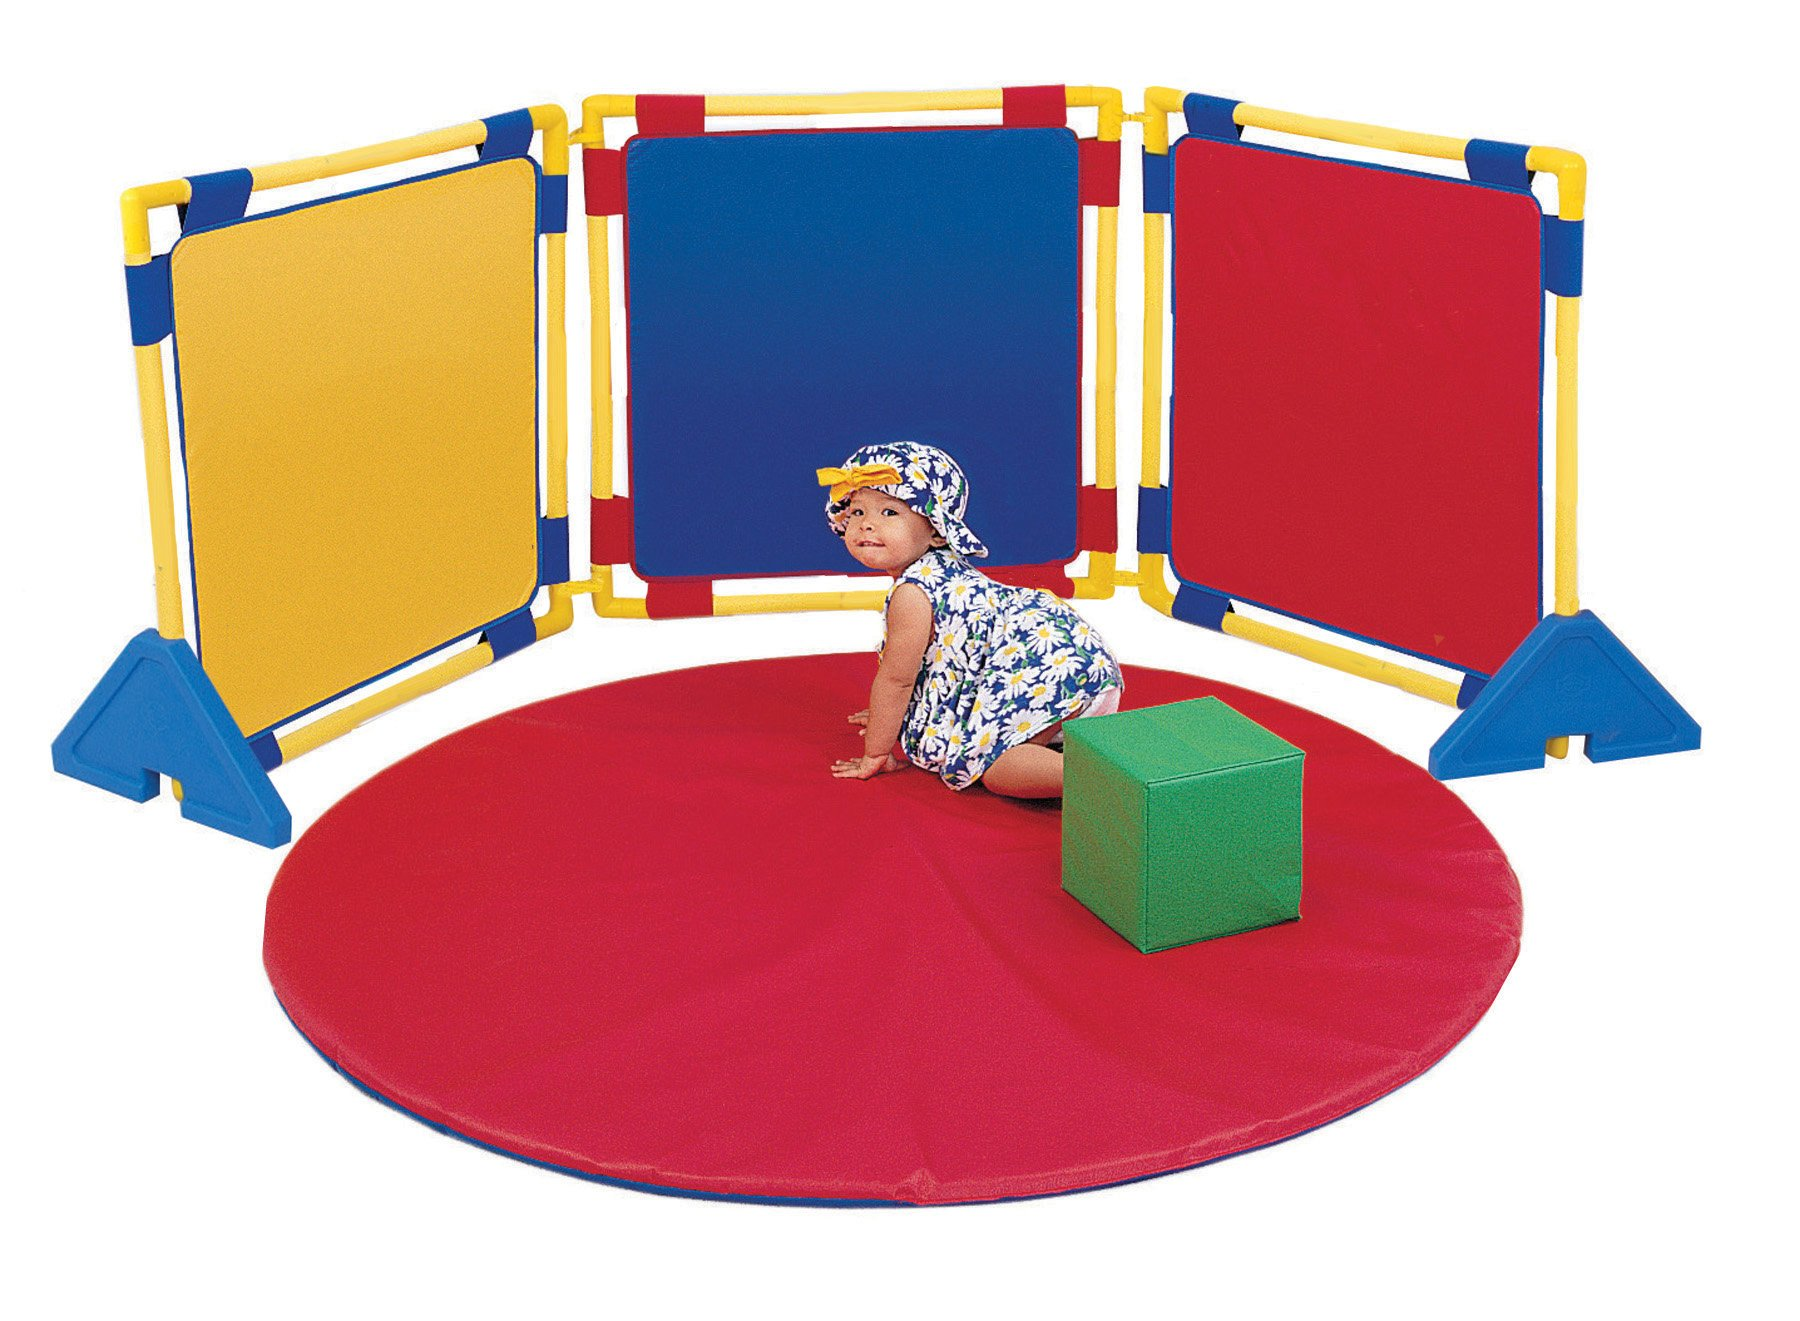 3 Square PlayPanel Set